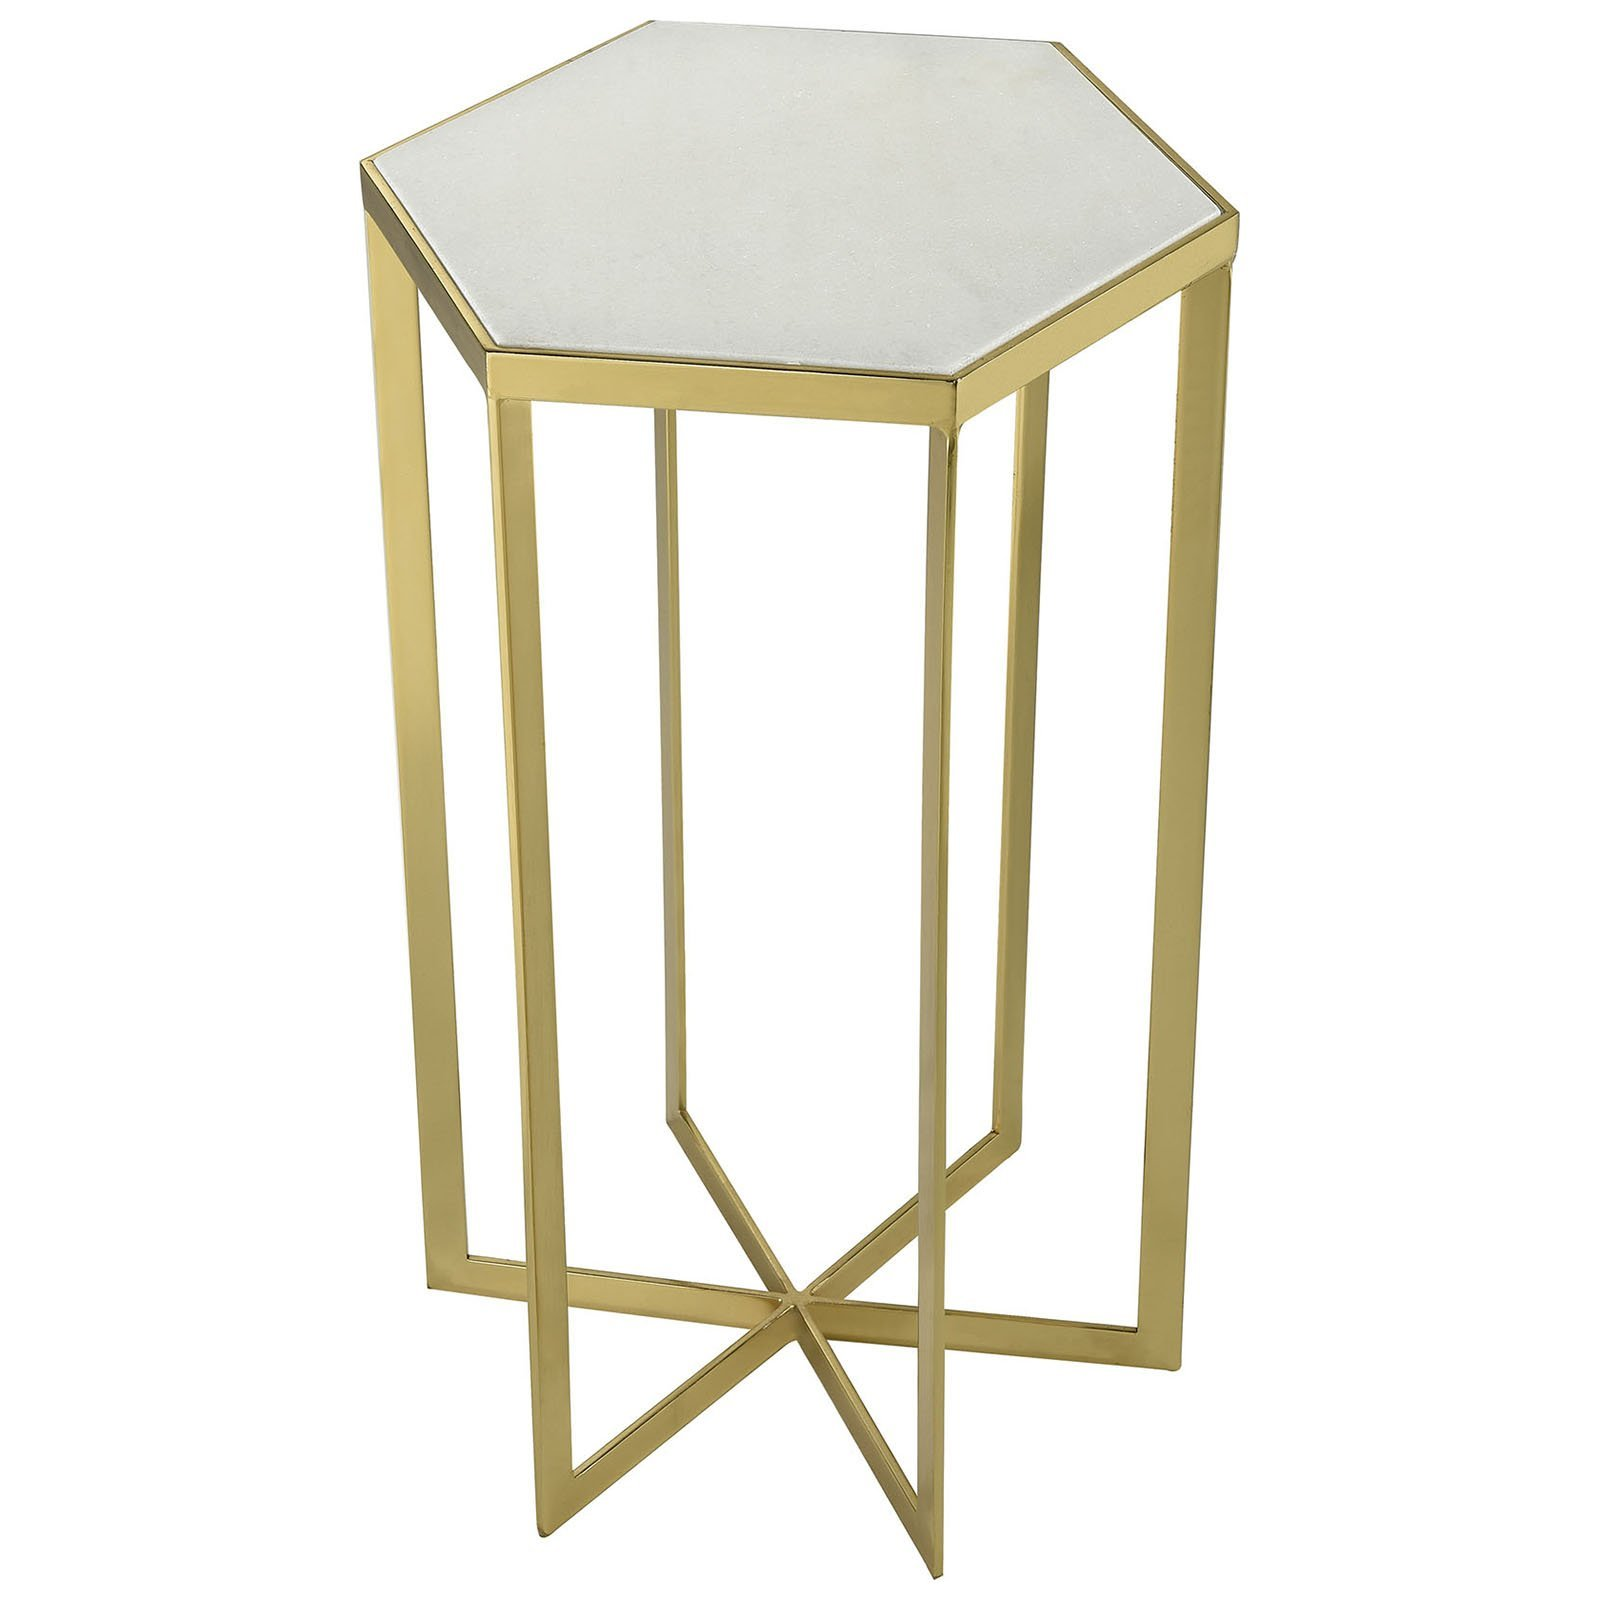 halter contemporary accent tables gold fratantoni lifestyles white metal table plated with genuine marble top umbrella and stand green lamp tiffany style butterfly dining room